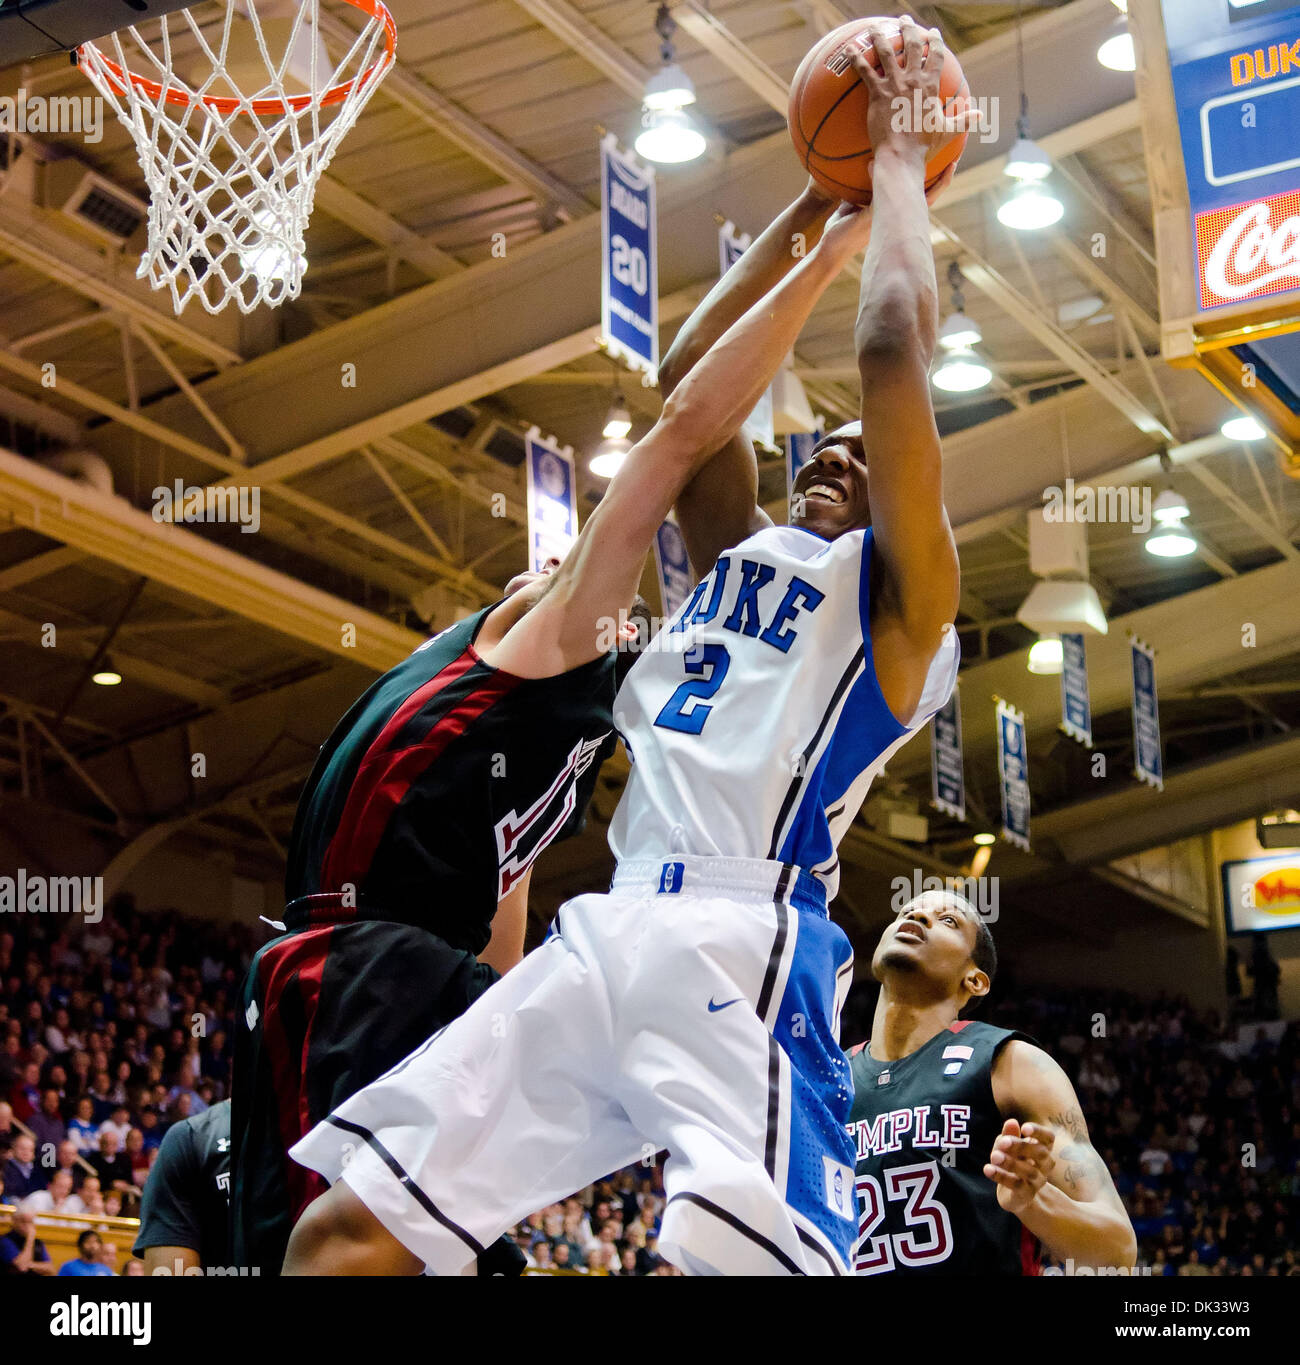 Feb. 23, 2011 - Durham, North Carolina, U.S - Duke Blue Devils guard Nolan Smith (2) and Temple Owls guard T.J. DiLeo (11) battle for the ball. Duke beats Temple 78-61 at Cameron Indoor Stadium Durham NC (Credit Image: © Mark Abbott/Southcreek Global/ZUMAPRESS.com) - Stock Image